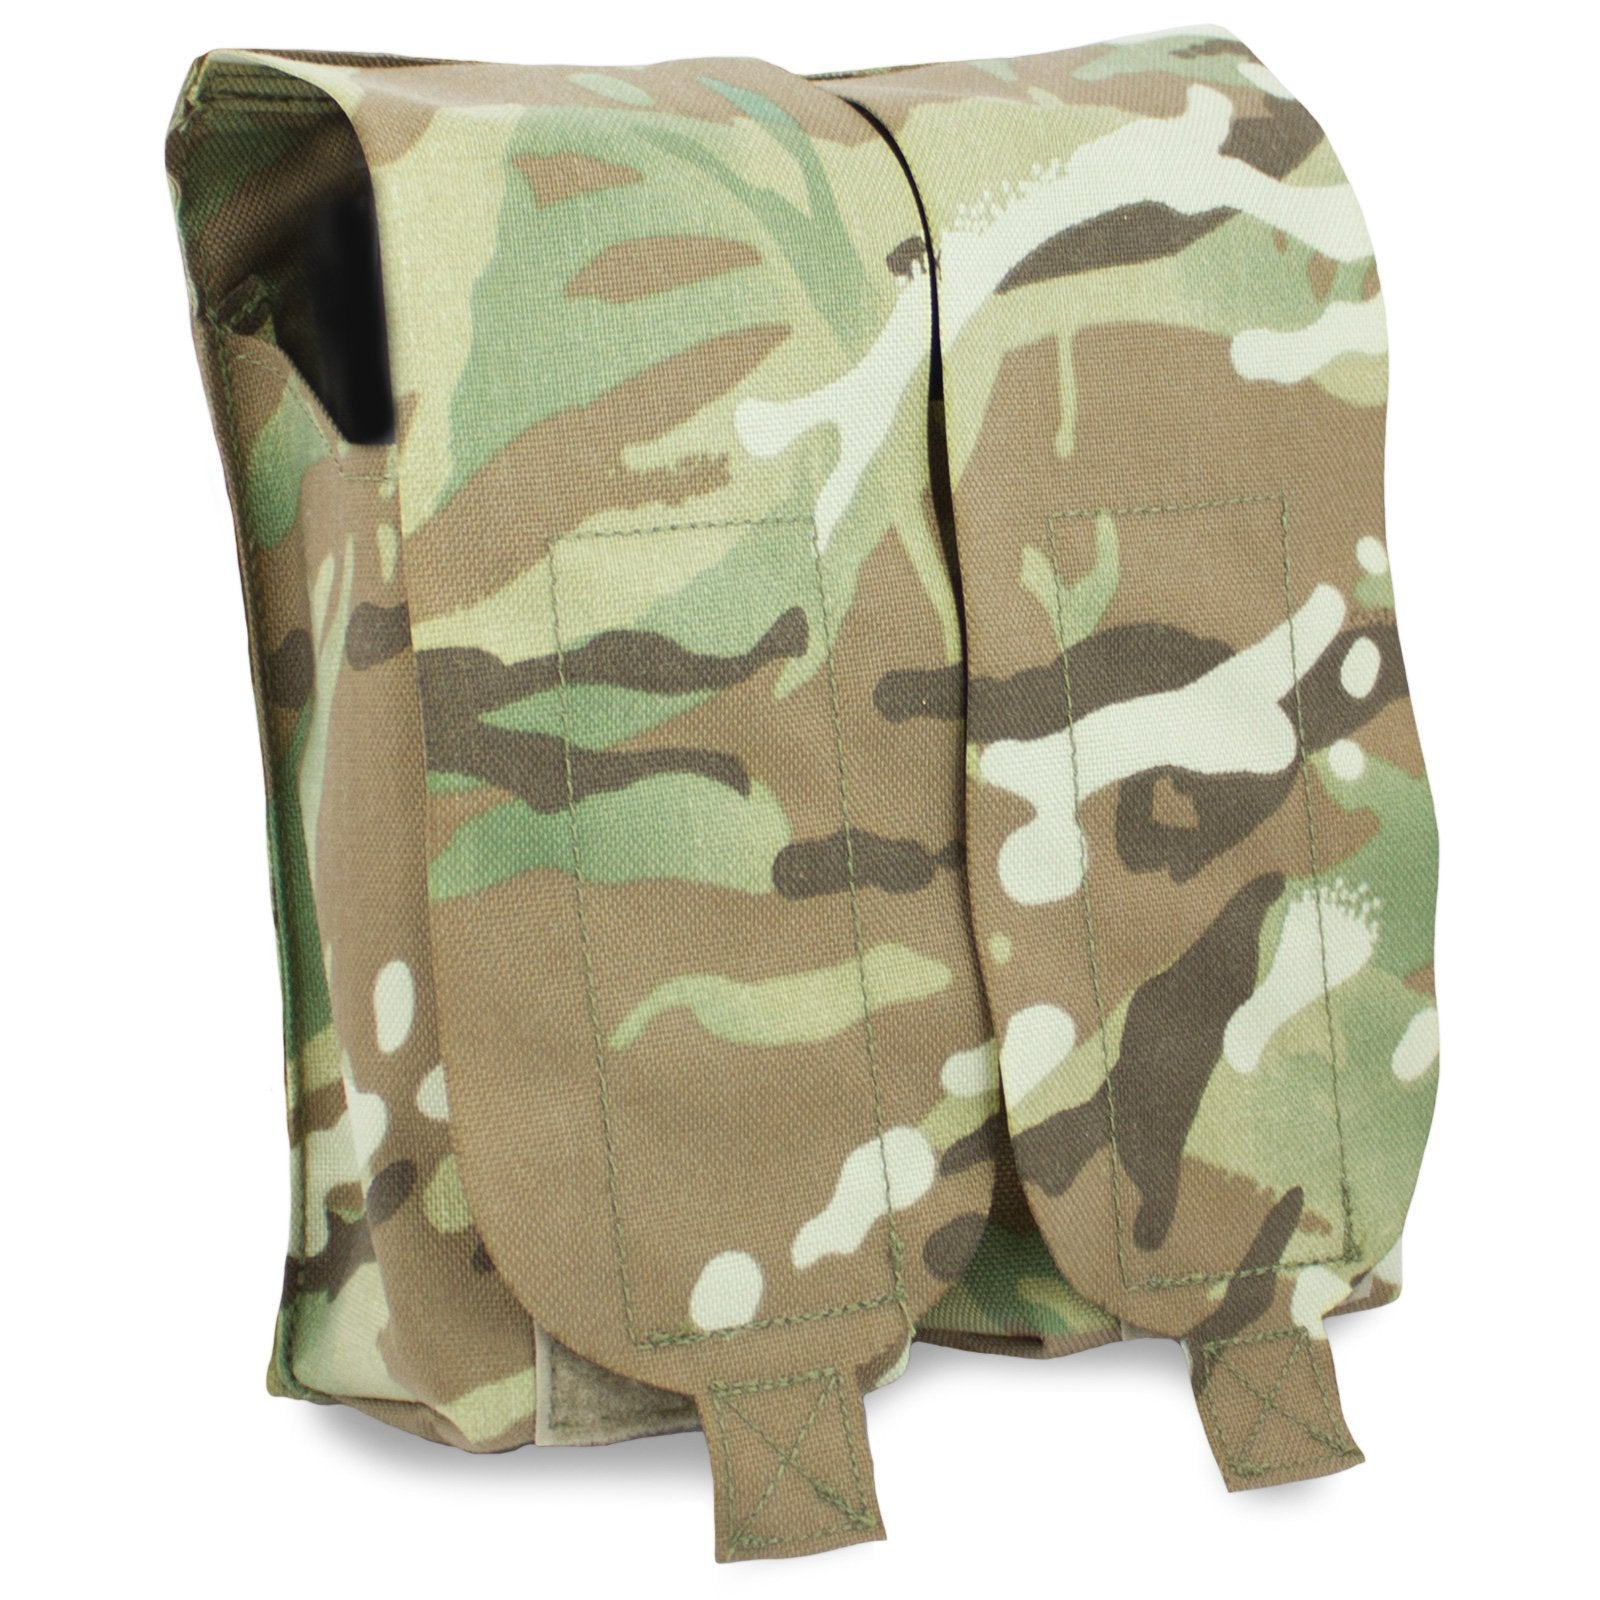 Raven Laser Cut MOLLE Double Ammo Pouch | UKMCPro